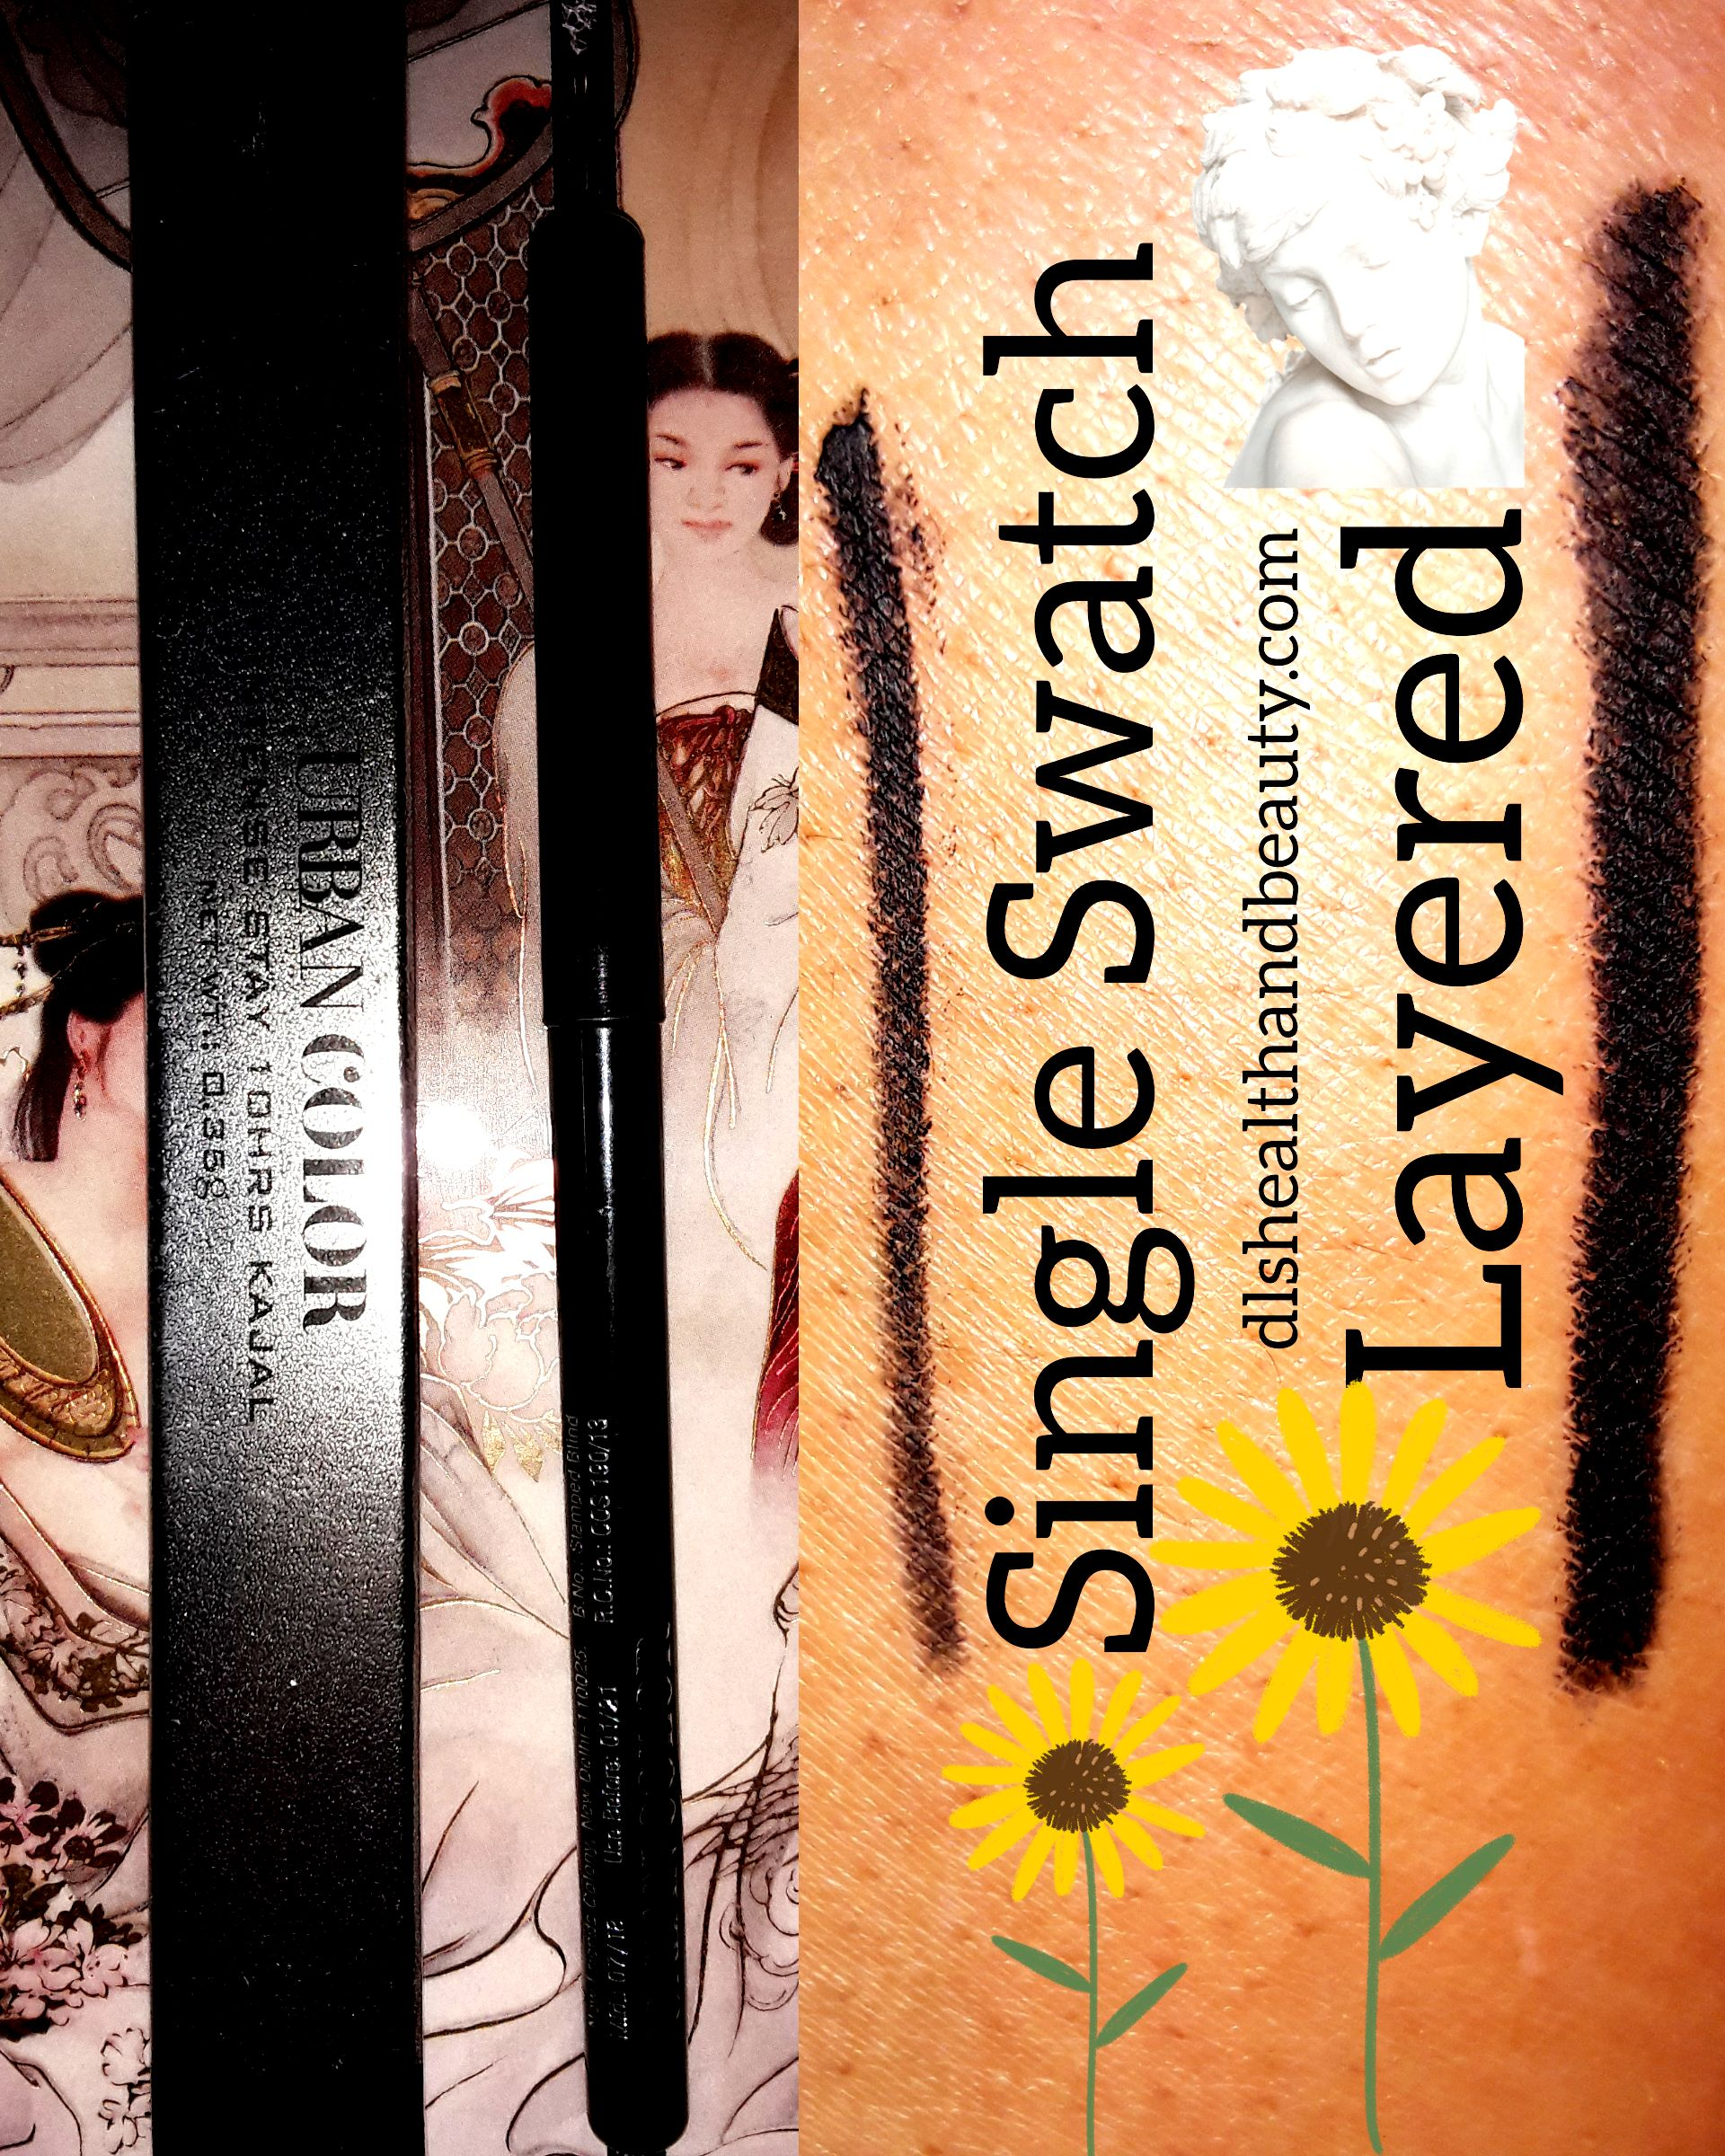 Product Review: Mineral Herbal Organic Natural Urban Color Intense Stay 10Hrs Kajal In Blackest Black मेकअप आईलाइनर की समीक्षा - काजल आईलाइनर